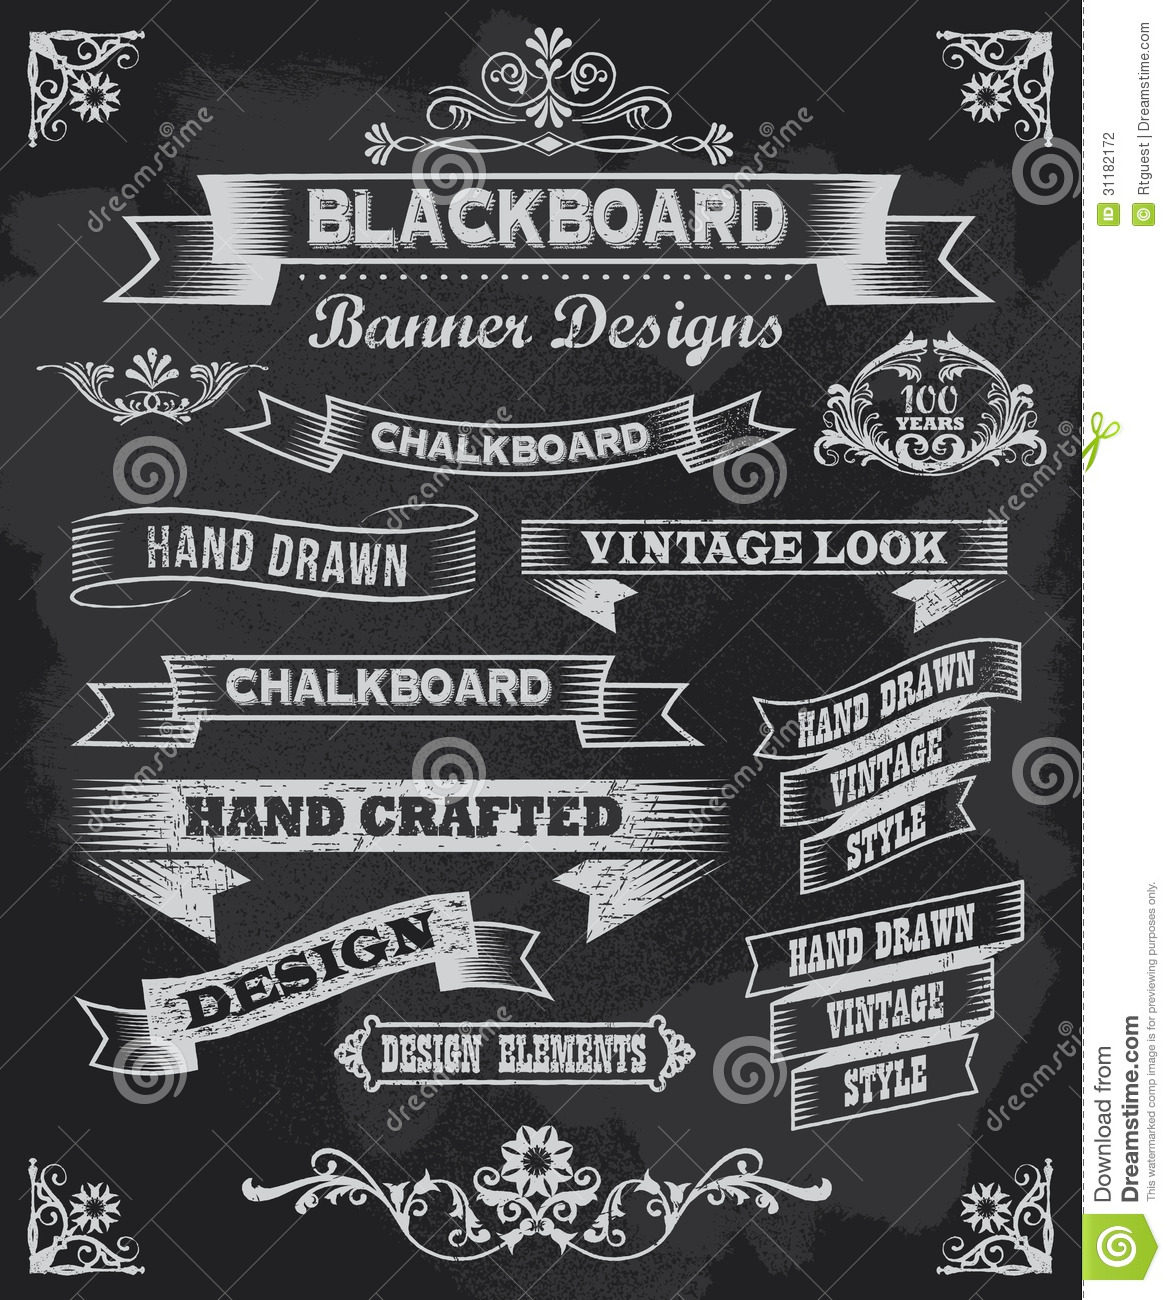 Chalkboard Banners And Vector Frames Stock Vector Image